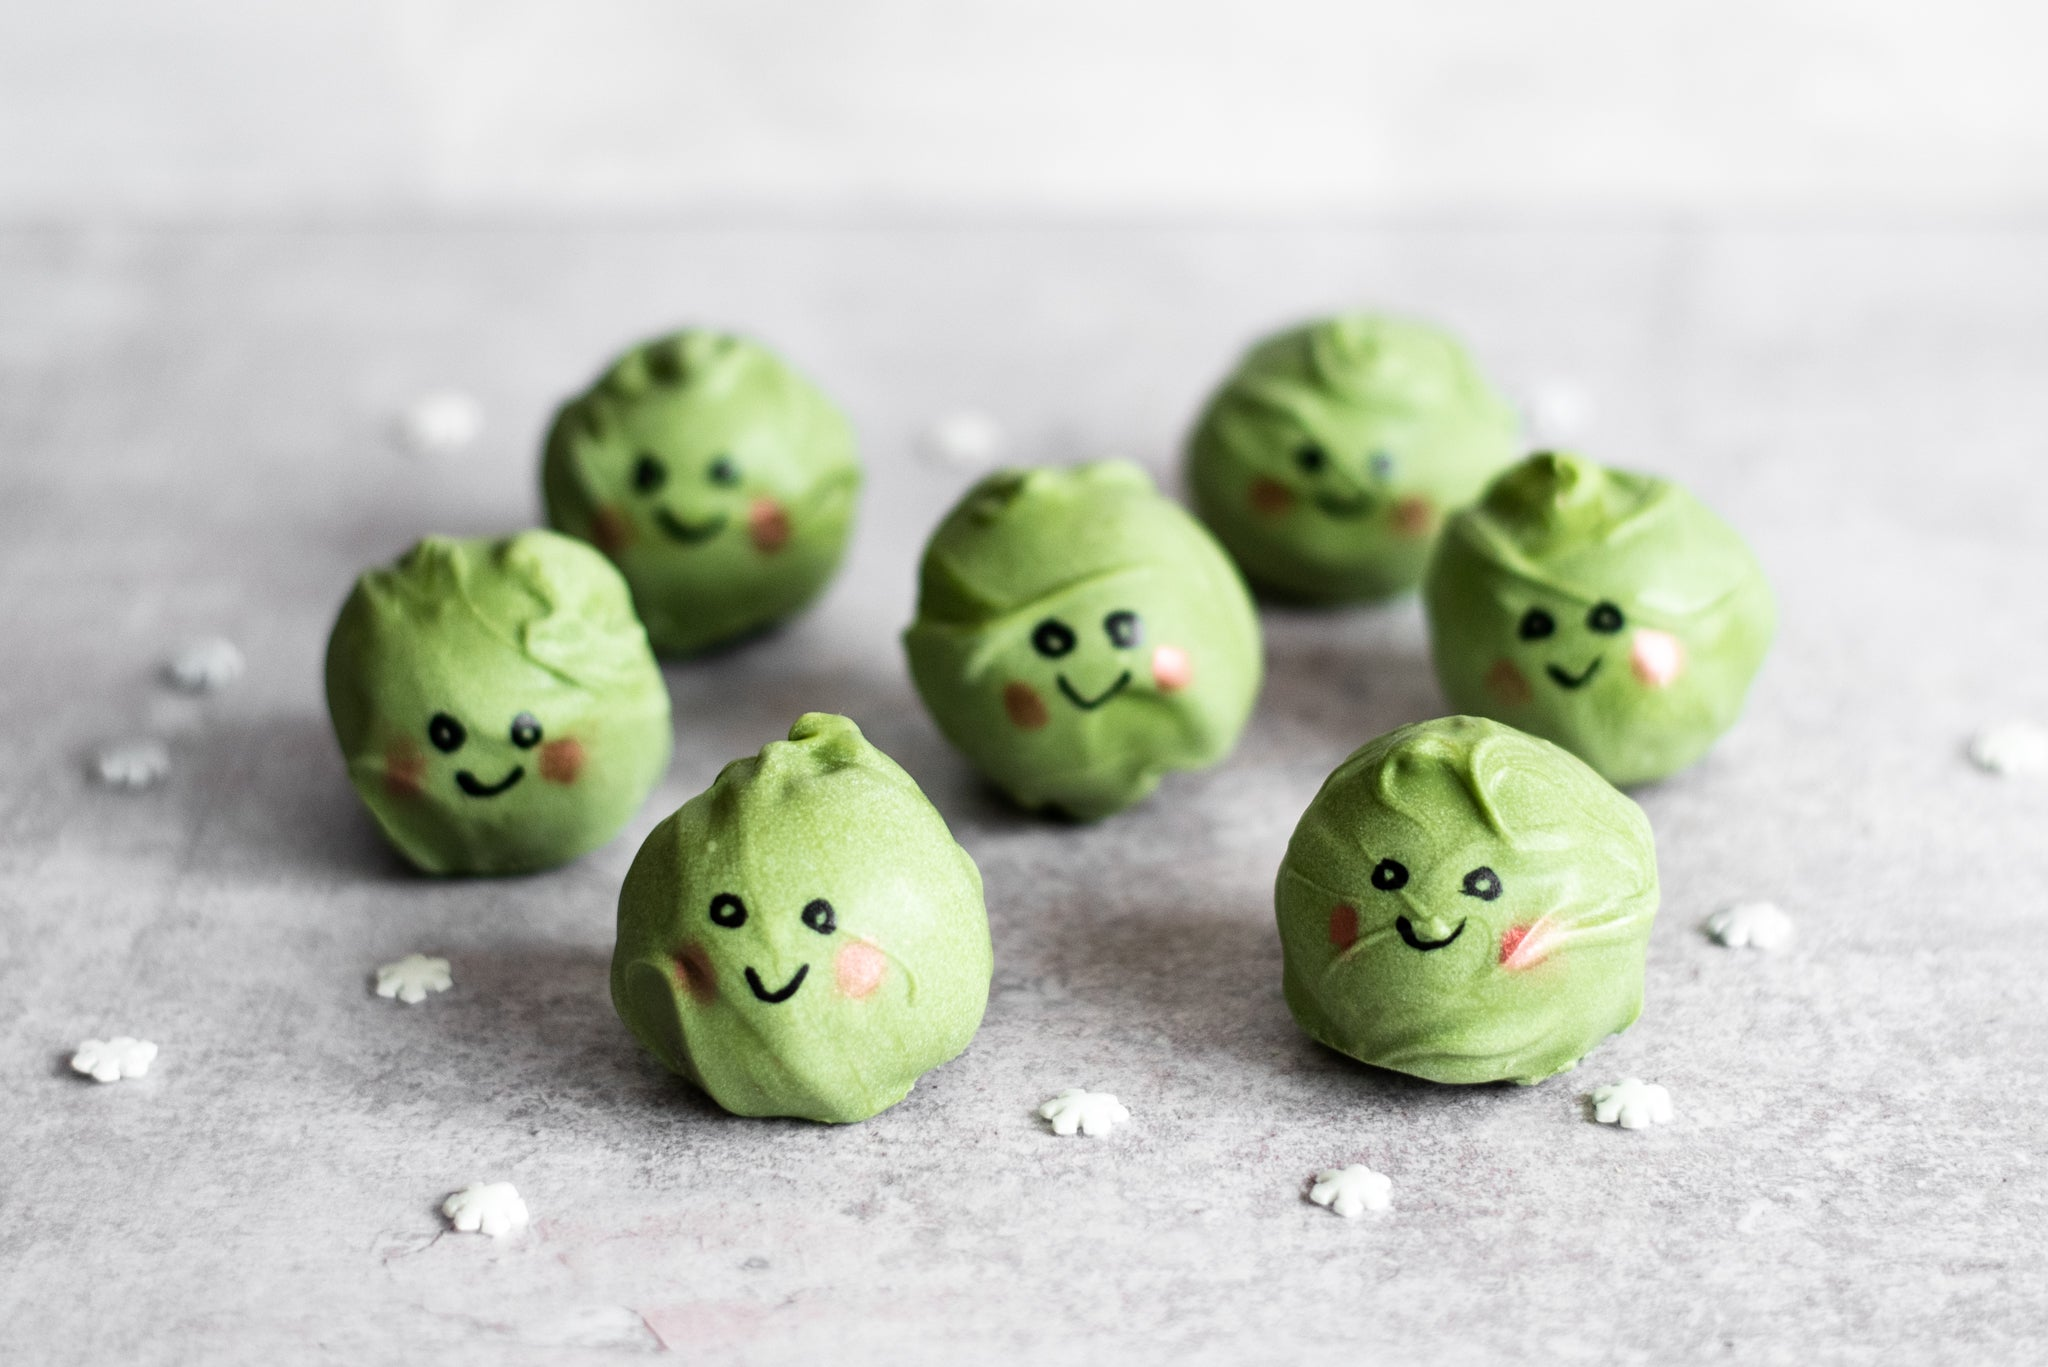 Brussel-Sprout-Cake-Pops-WEB-RES-6.jpg